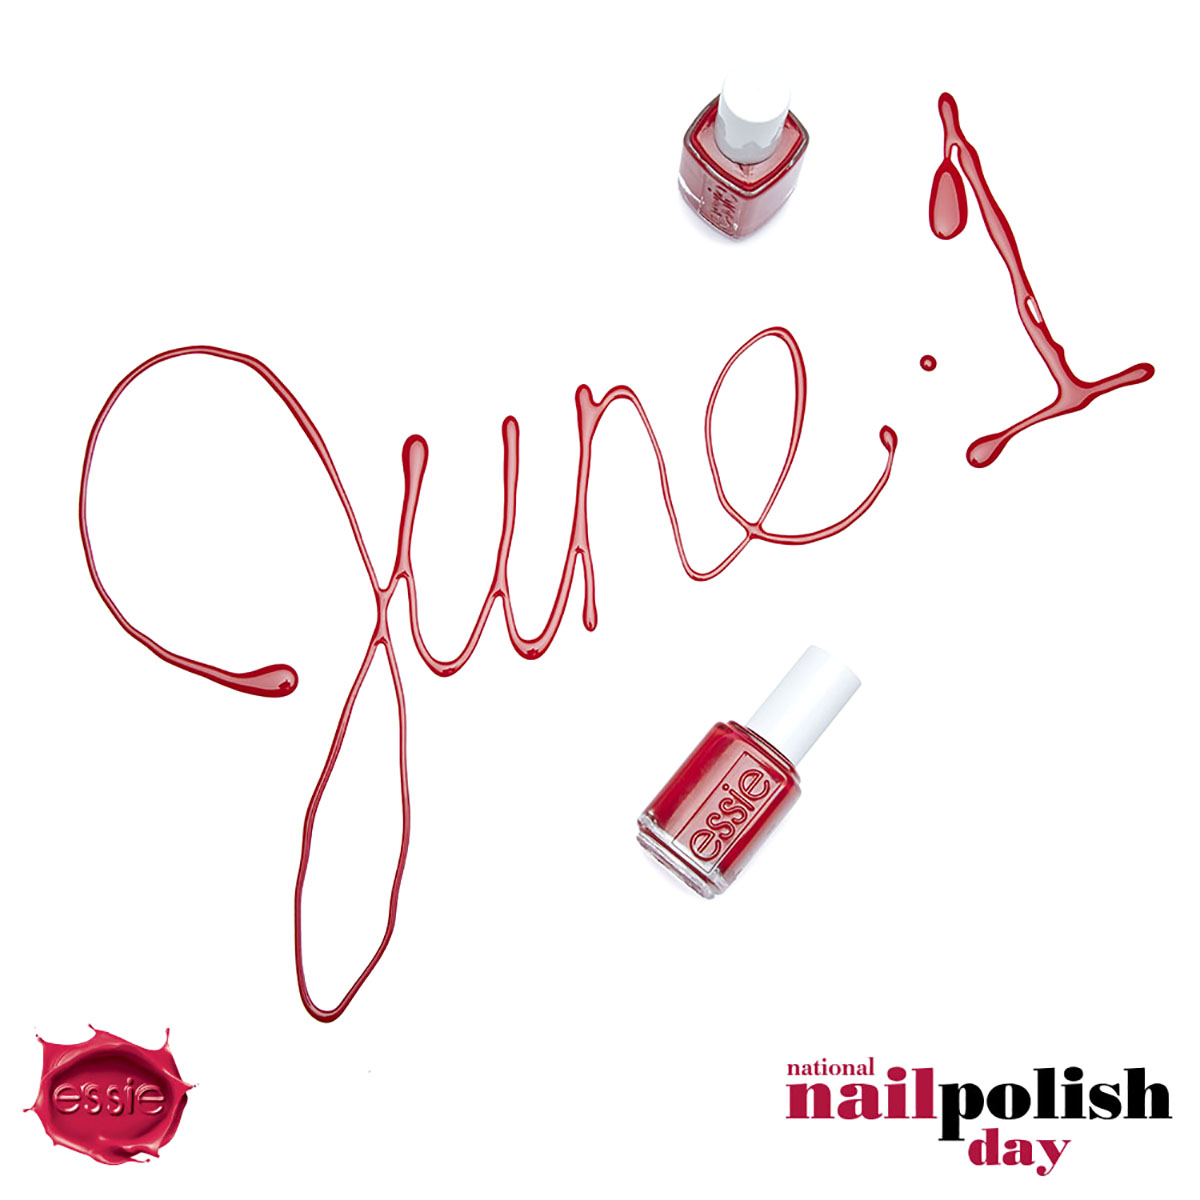 Celebrate National Nail Polish Day By Showing Your Essie Love Story